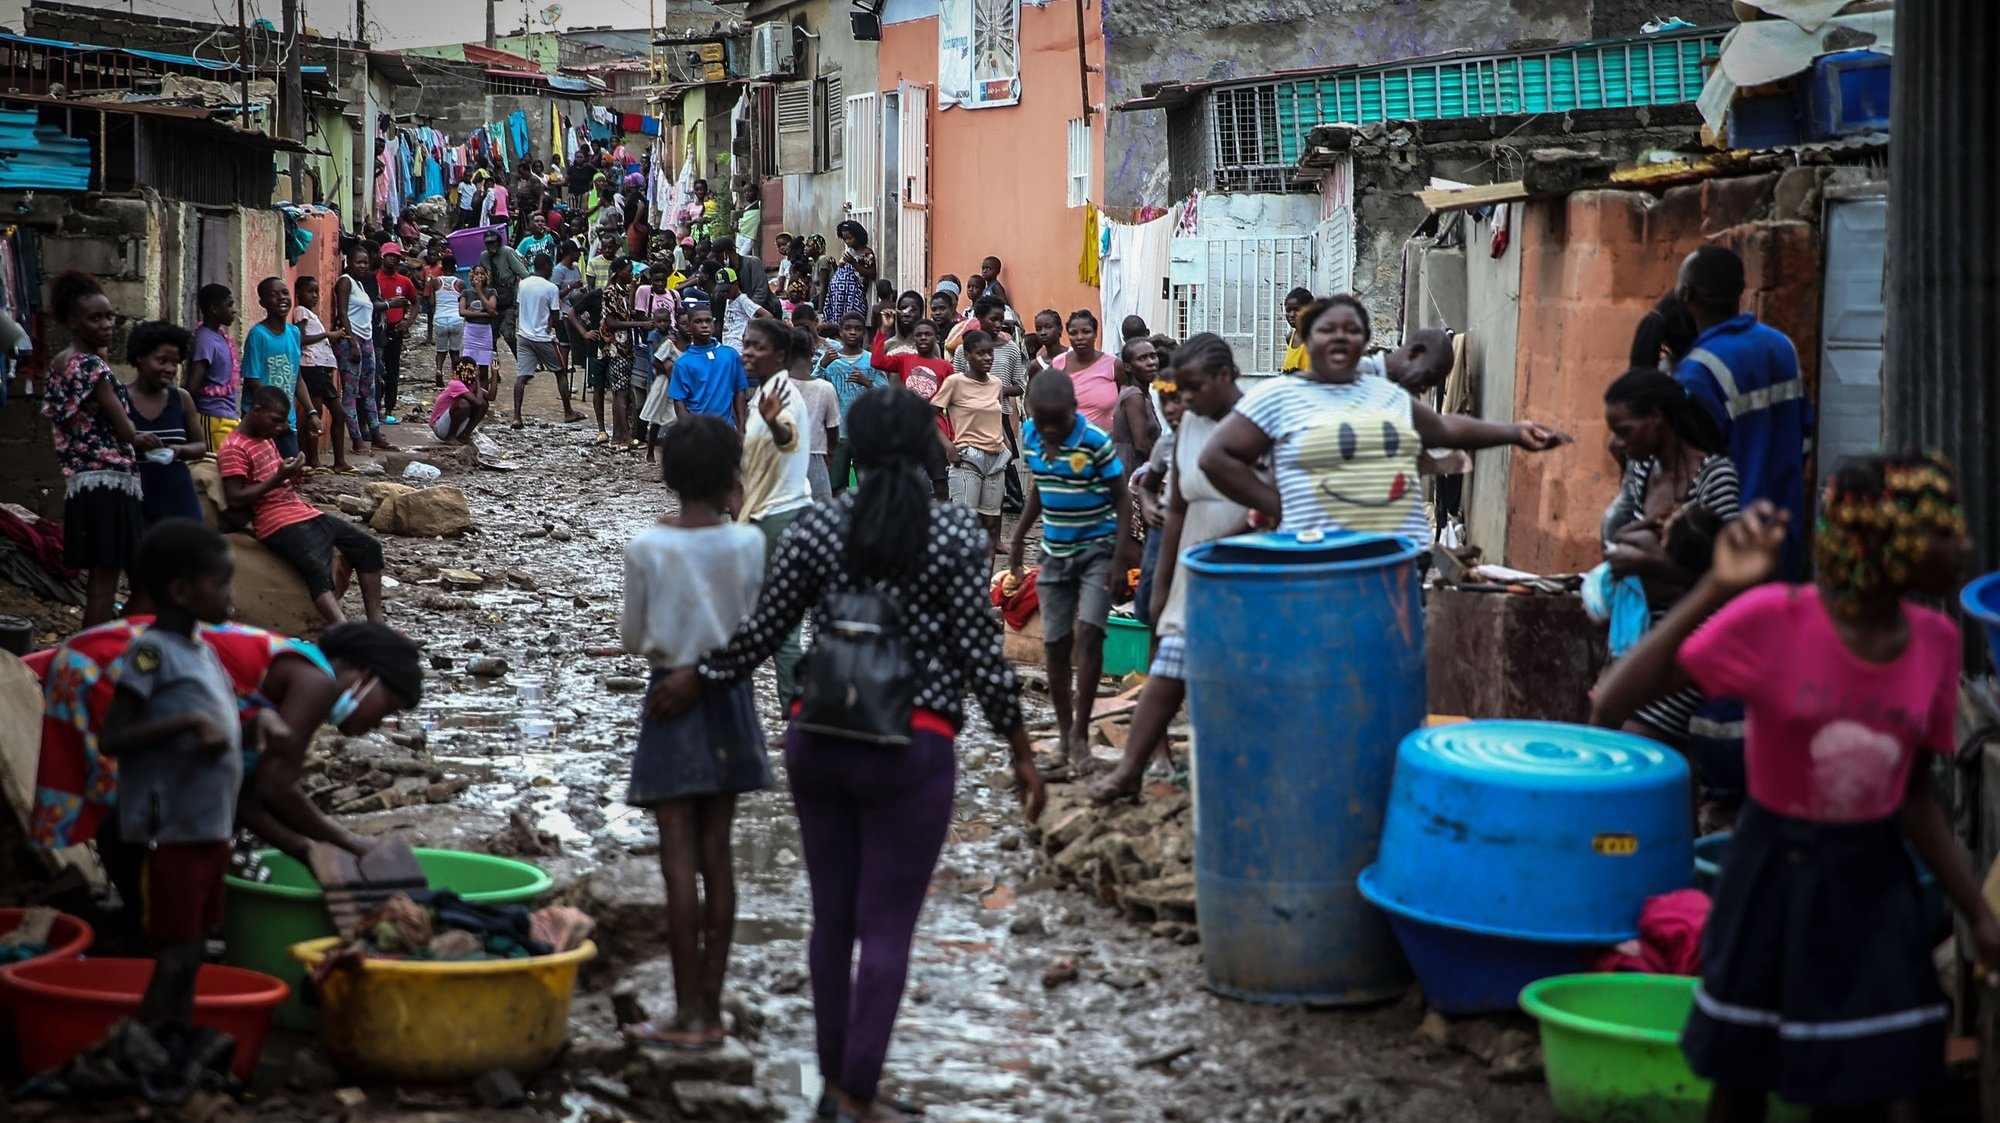 People on a muddy street after heavy rain that fell Monday night in Encide neighborhood, in the Sambizanga district, on the outskirts of Luanda, Angola, 20 April 2021. The torrential rains that hit Luanda on Monday killed 14 people and left 8,000 homeless, with 16 houses collapsed, 15 trees fell, and a bridge was destroyed, among other damages yet to be calculated. AMPE ROGERIO/LUSA